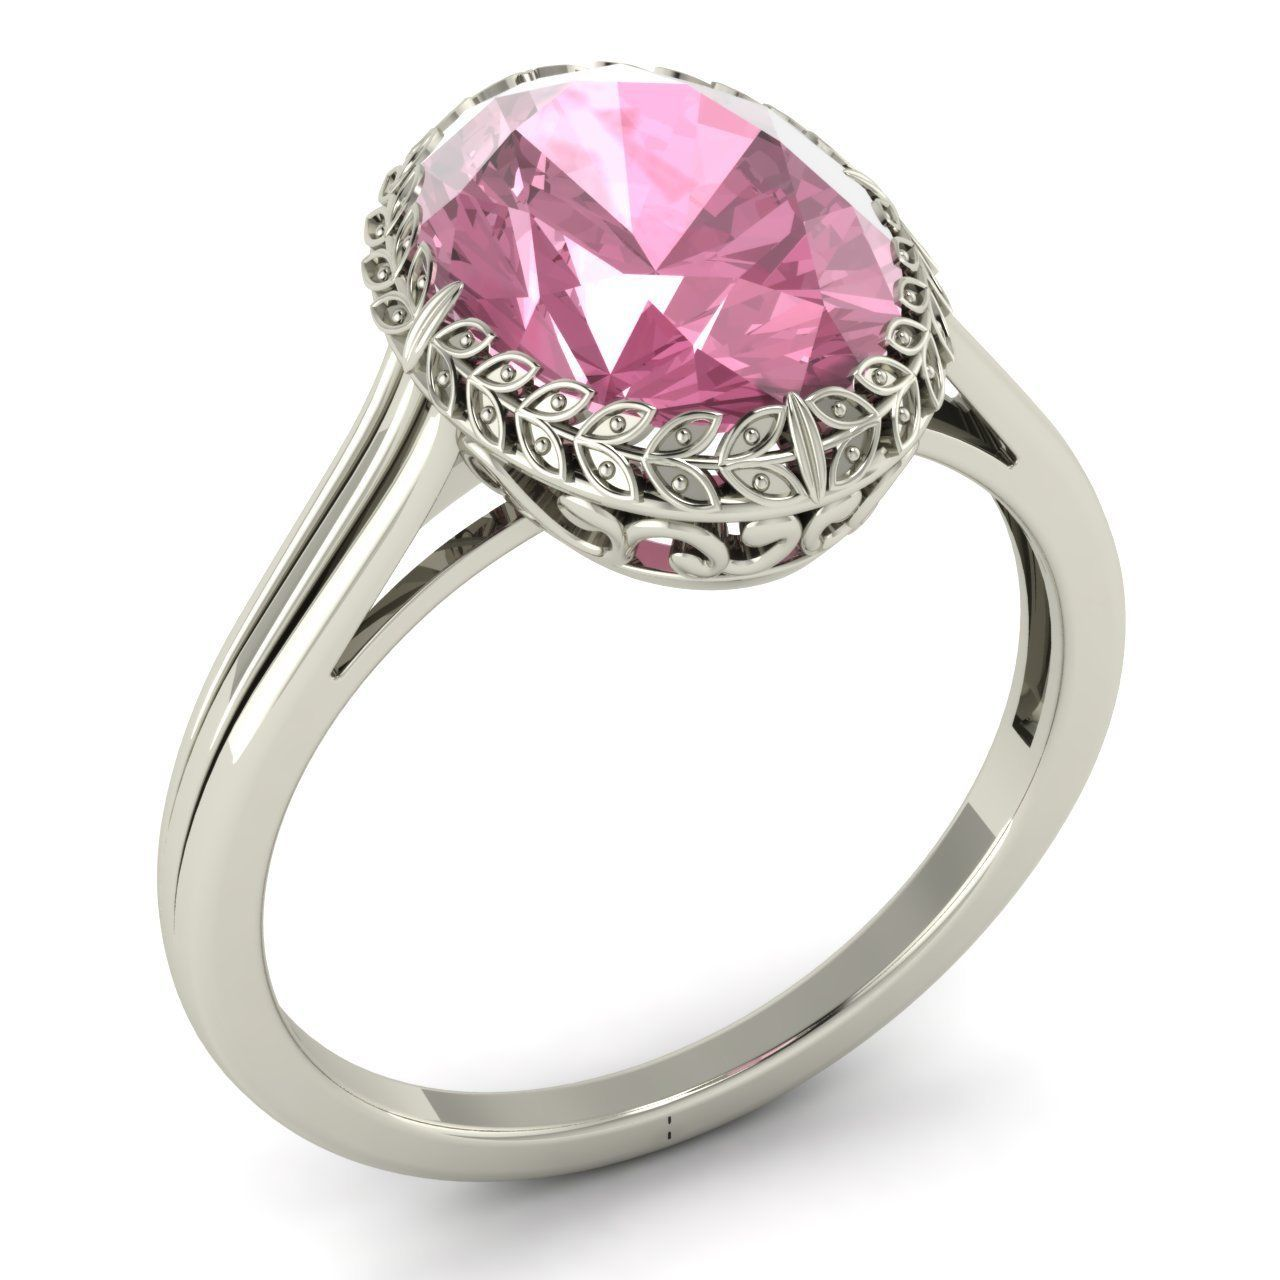 Certified 3 08 Ct Pink Tourmaline Vintage Look Solitaire Ring in 14k White Gold | eBay